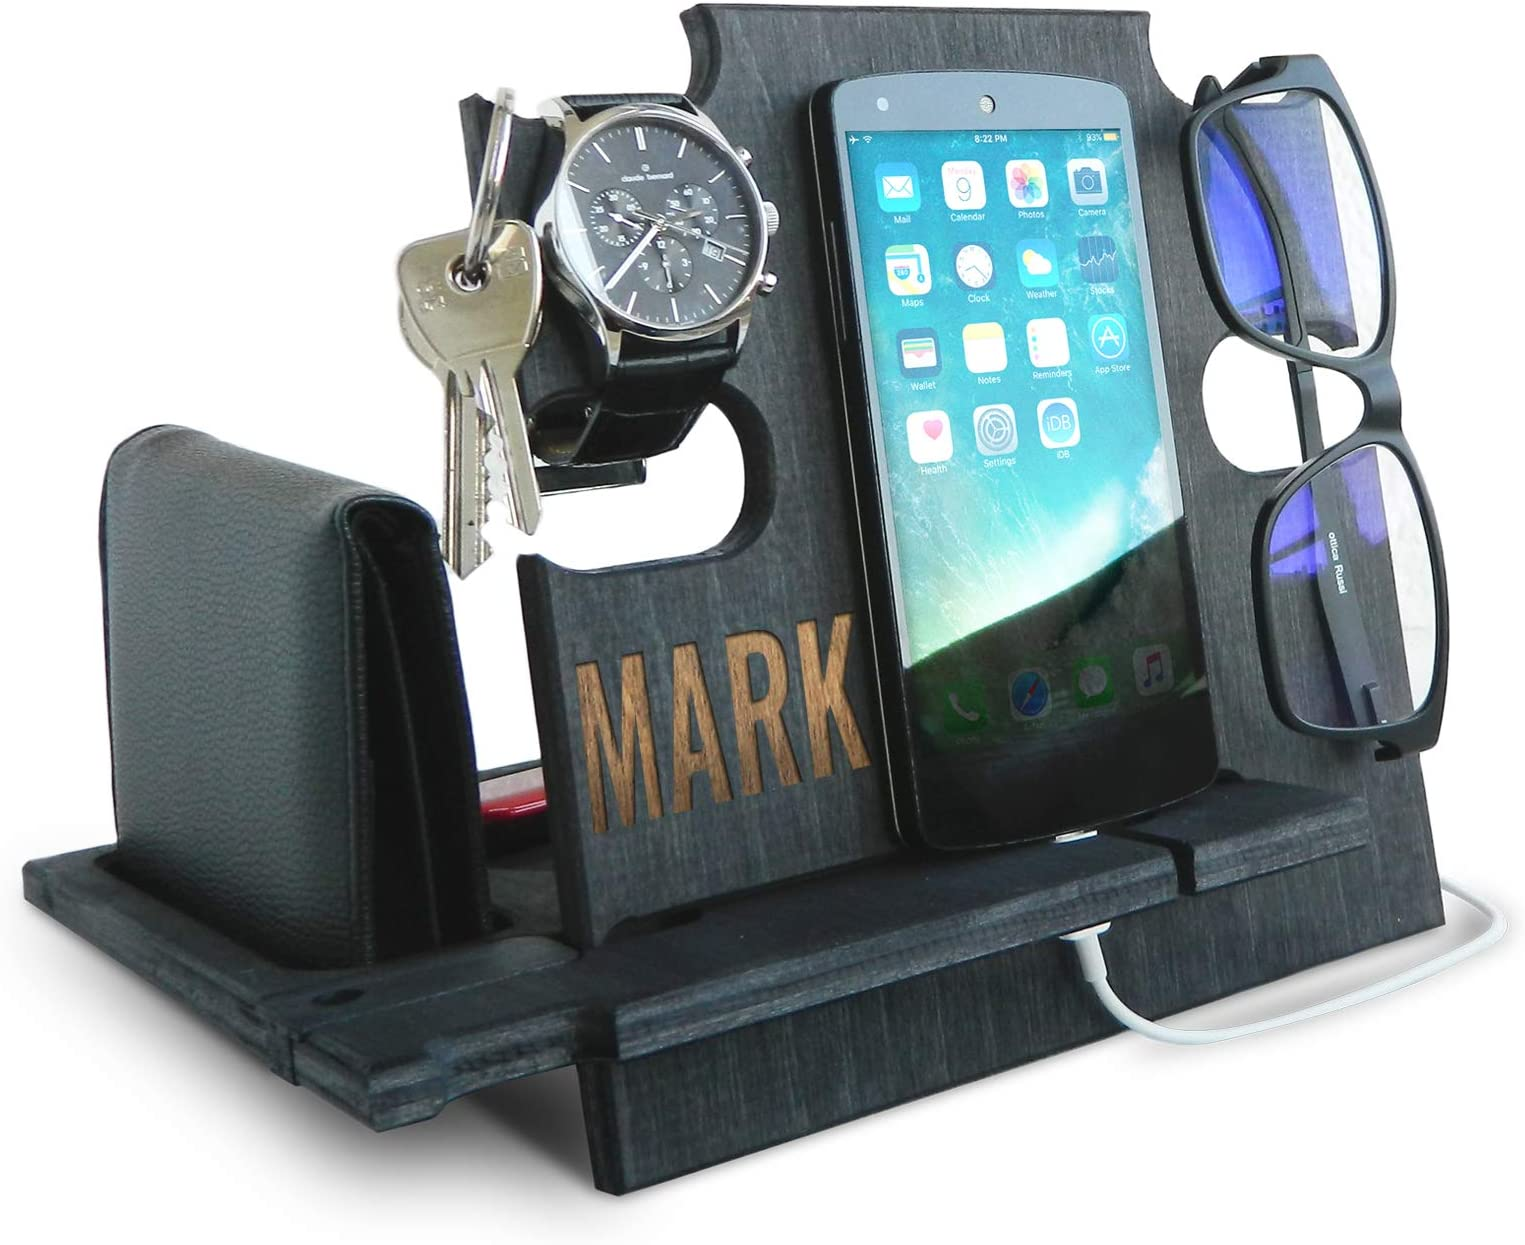 Personalized Gifts for Men, Cell Phone Stand, Wooden Desk Organizer, Phone Dock - Nightstand Charging Station, Phone Holder, Gift Ideas for Christmas, Birthday, Anniversary (Ebony)